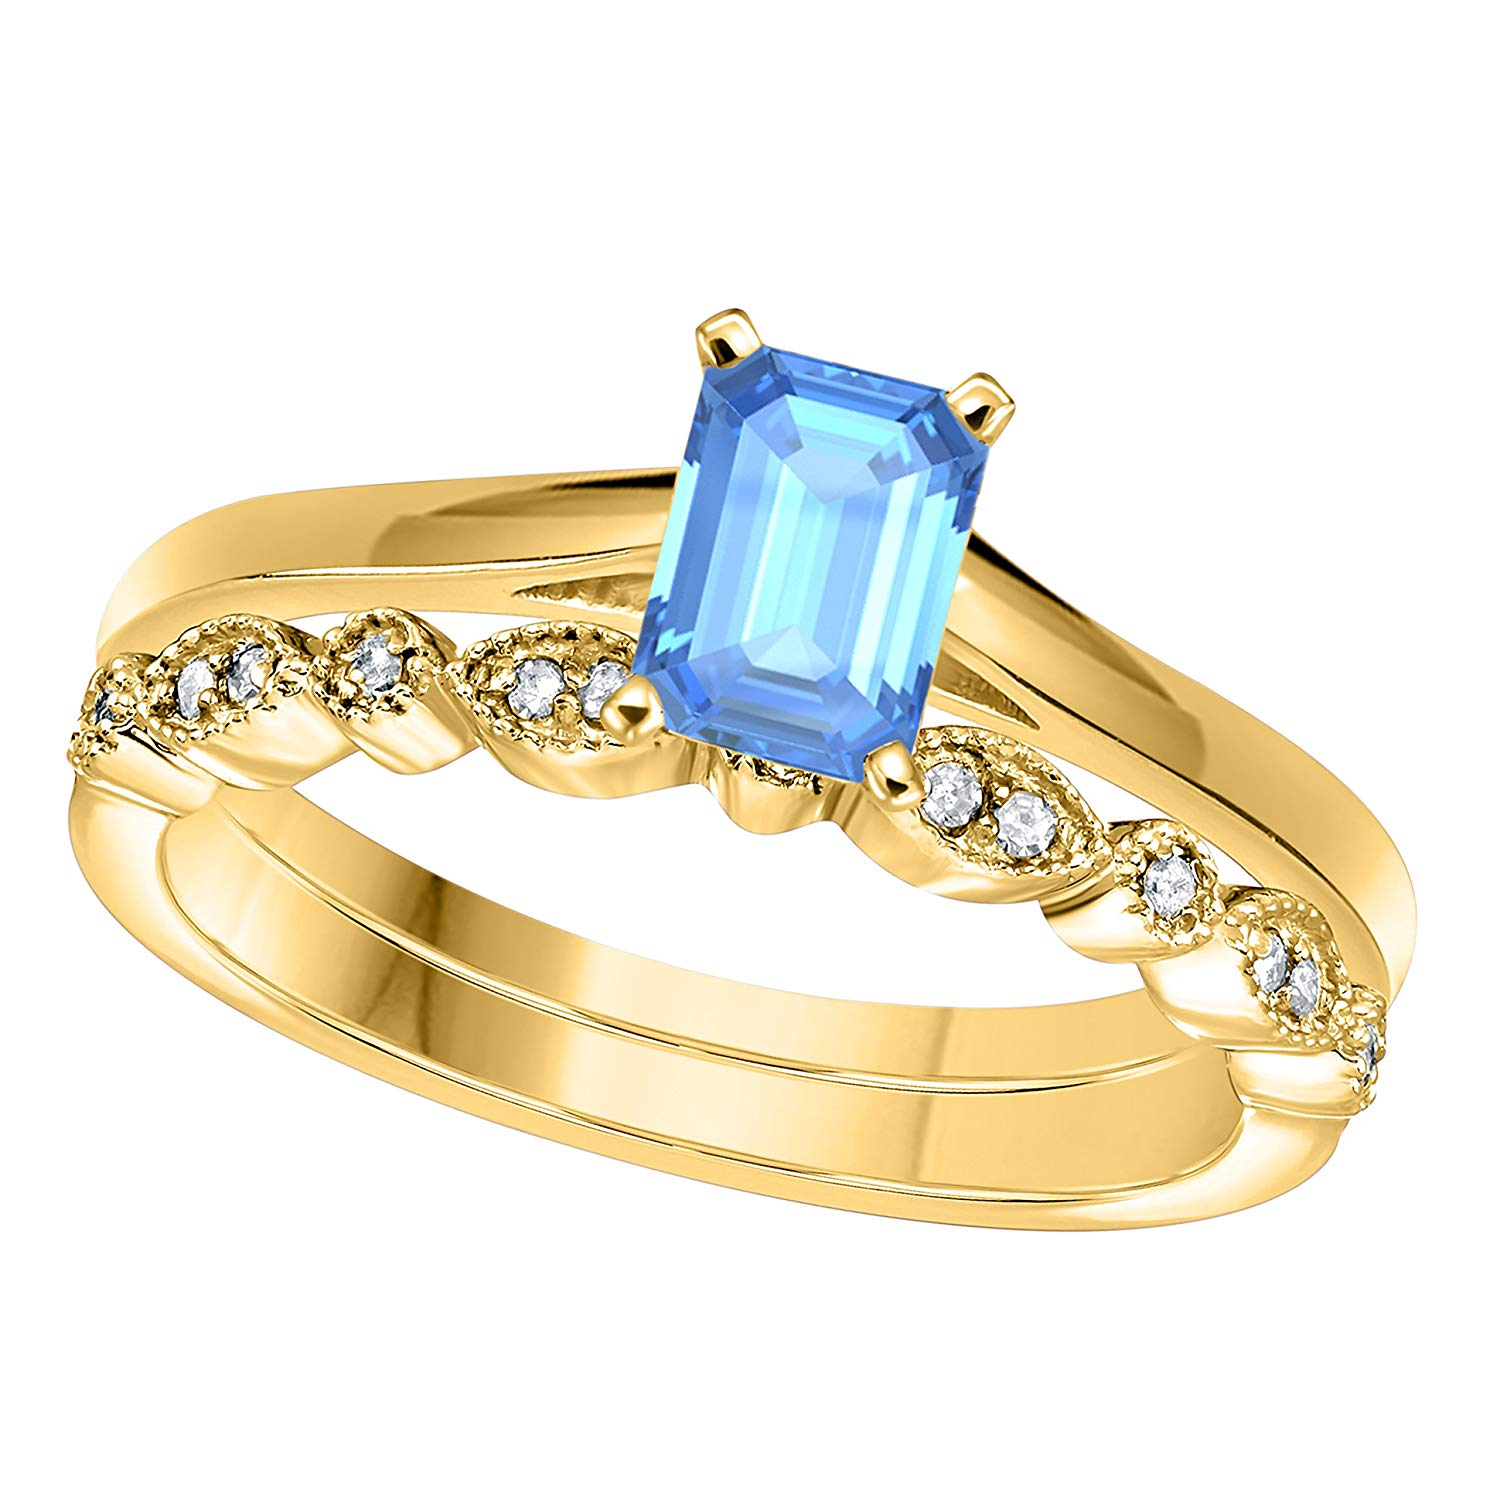 DreamJewels 1.00 Ct Emerald Shape & Round Cut Blue Topaz & White CZ Diamond 14k Yellow Gold Finish Alloy Art Deco Vintage Design Wedding Engagement Ring Sets Size 4.5-12